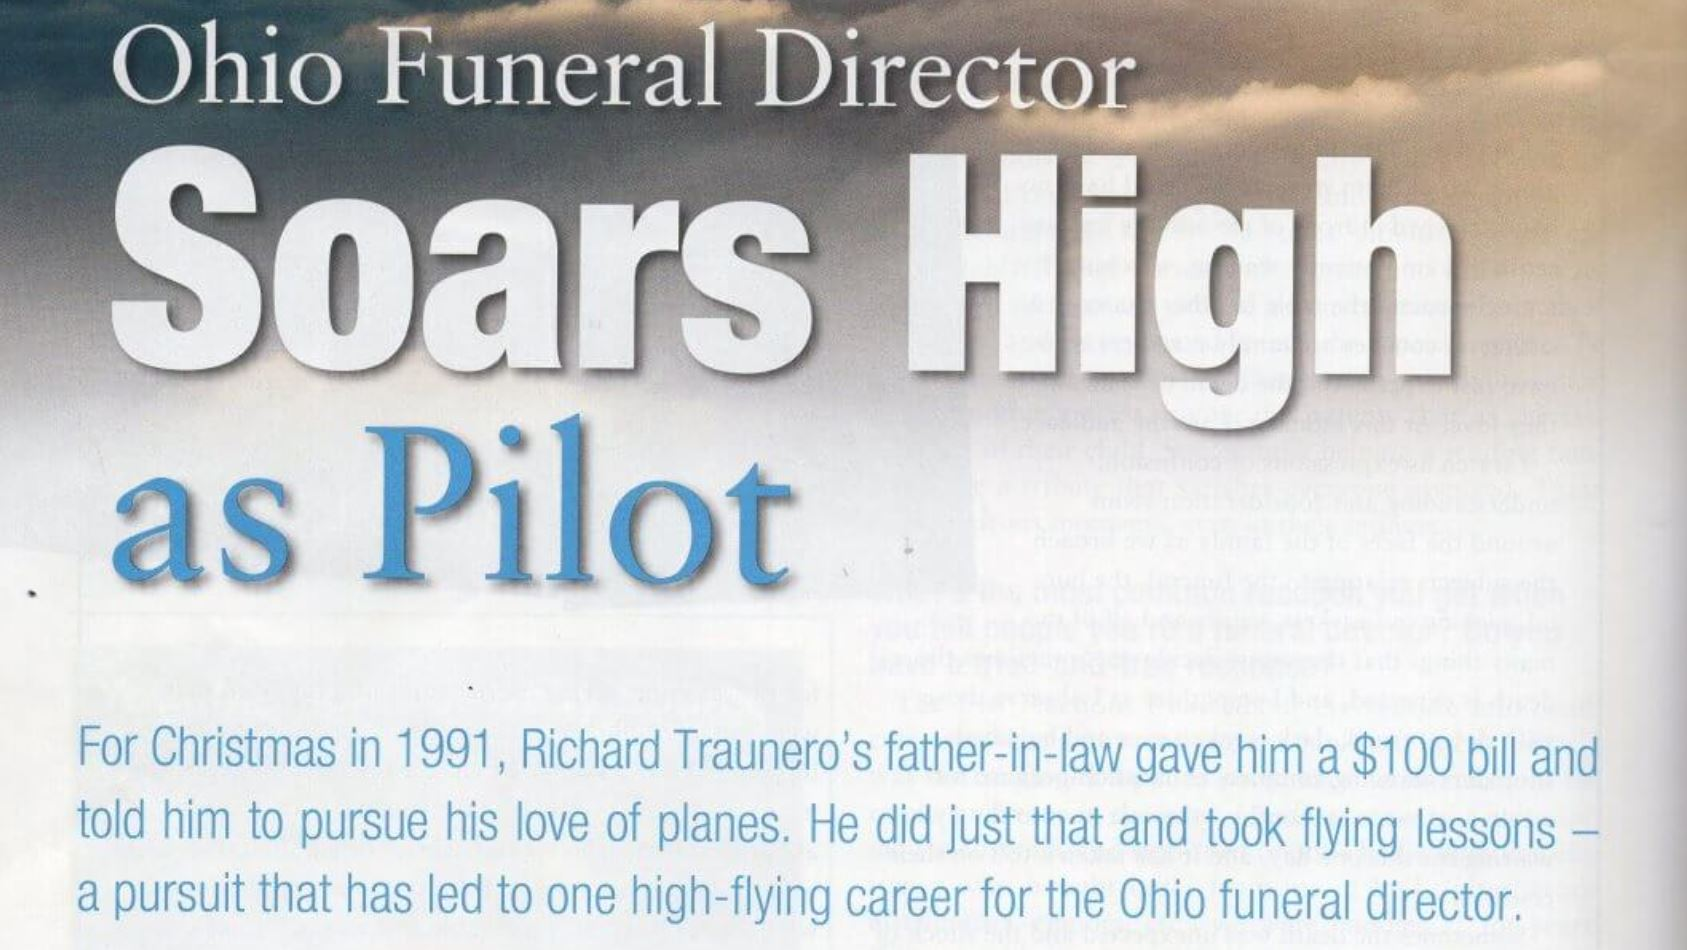 Screen grab from Funeral Director magazine